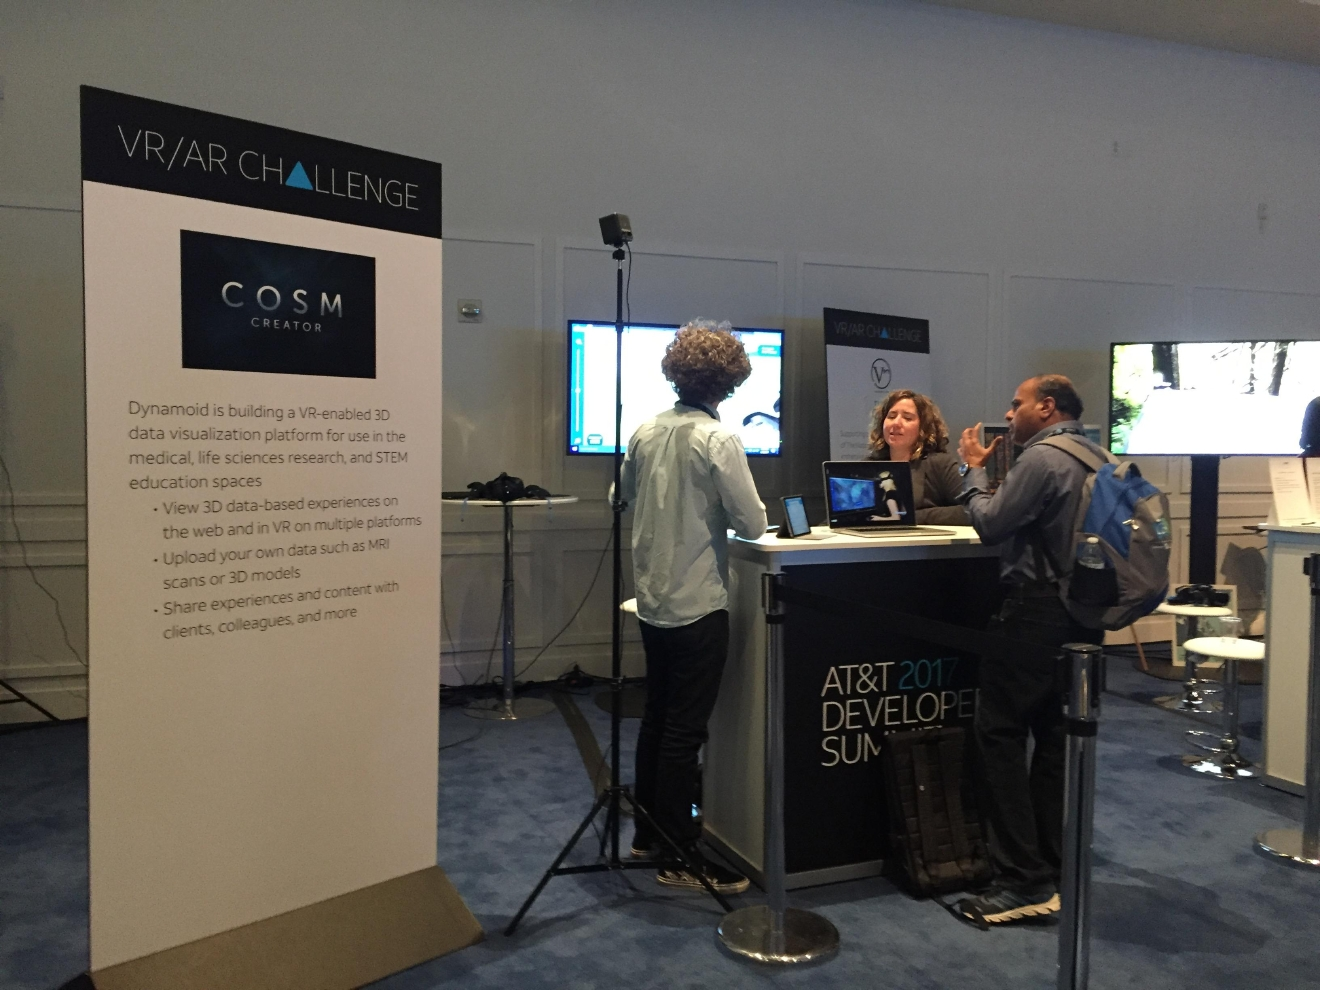 During a busy tech week in Las Vegas, AT&T held their Developer Summit at the Palms Casino Resort from Jan. 3-4, 2017, also featuring a VR/AR competition (Jami Seymore | KSNV)